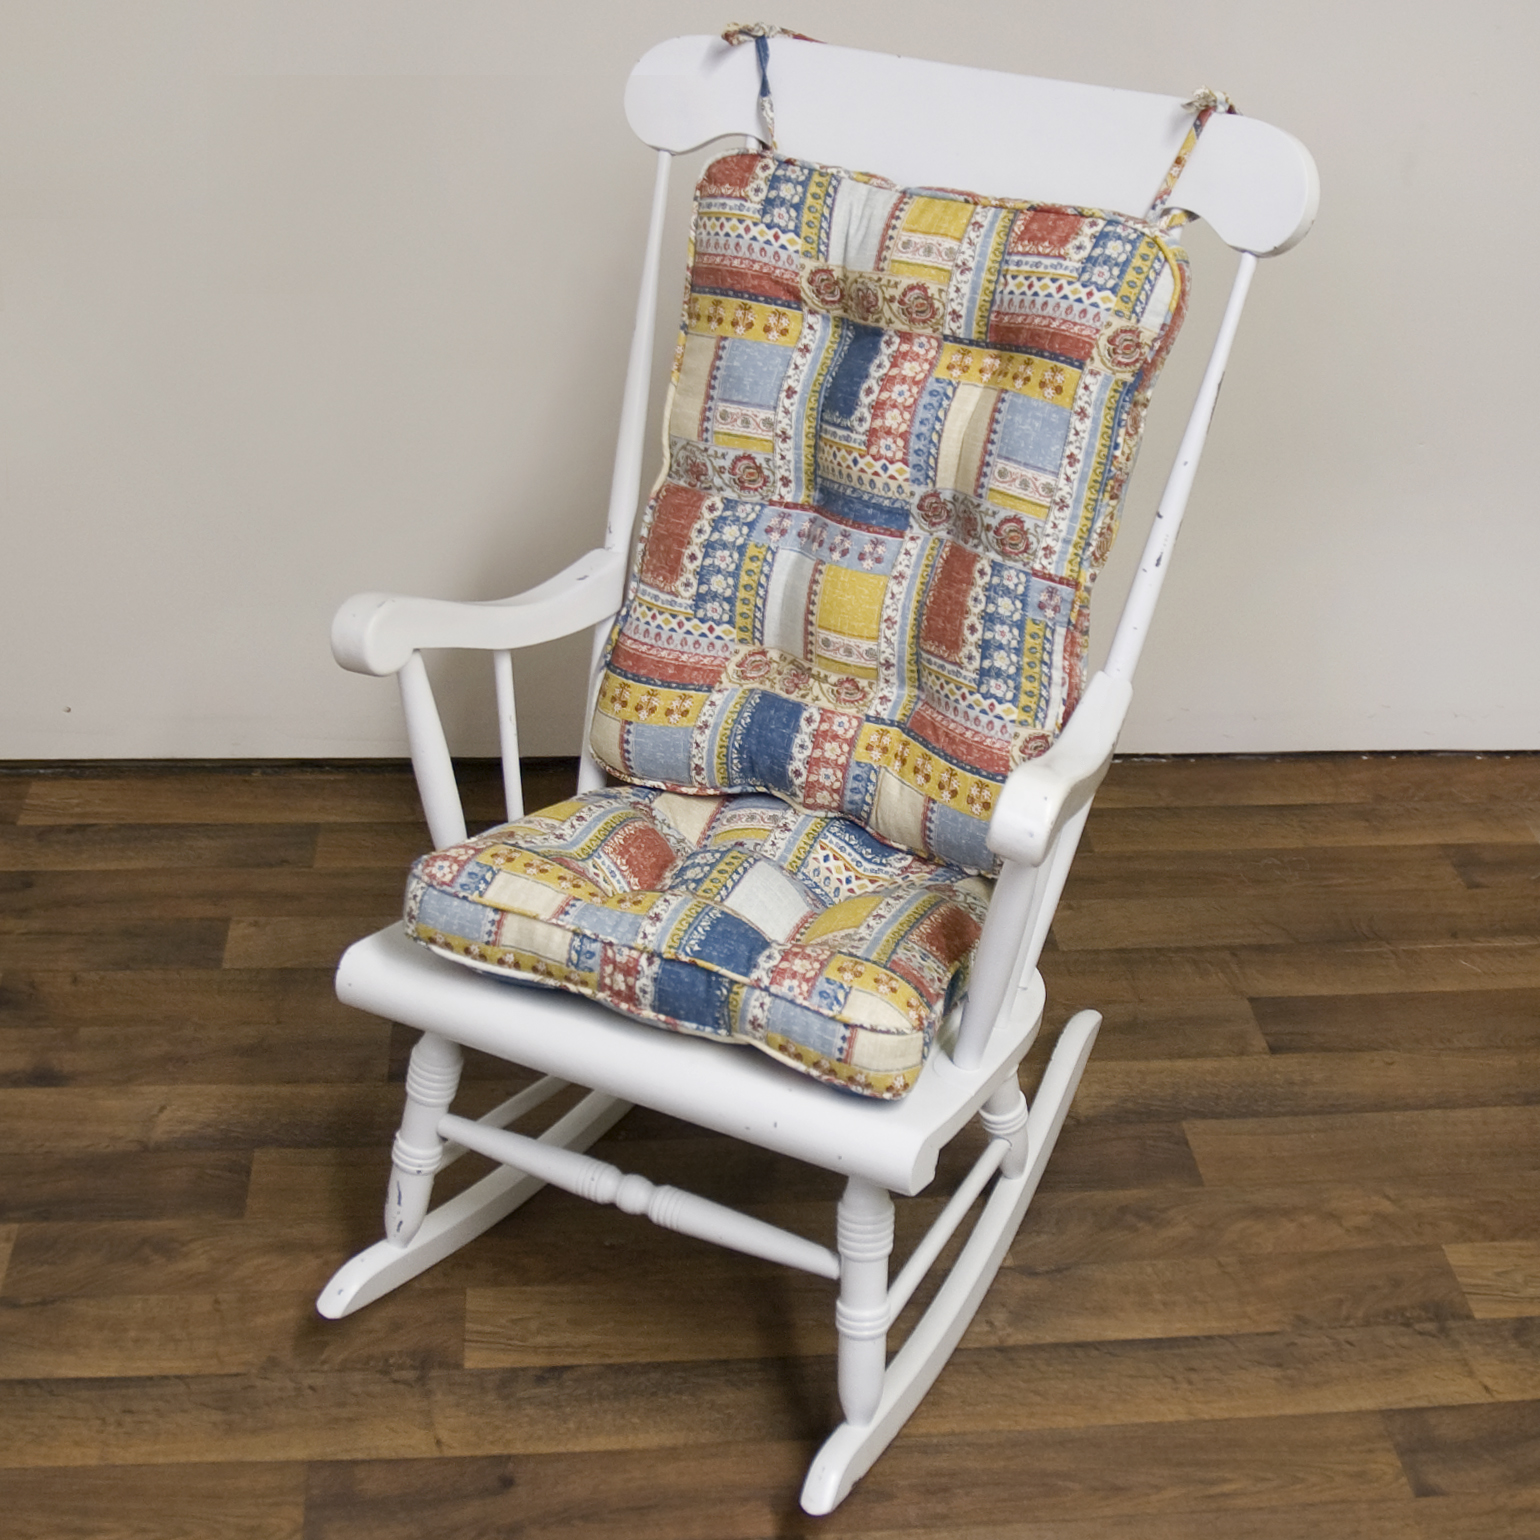 greendale rocking chair cushions tall office chairs for standing desks cushion sale  pads and